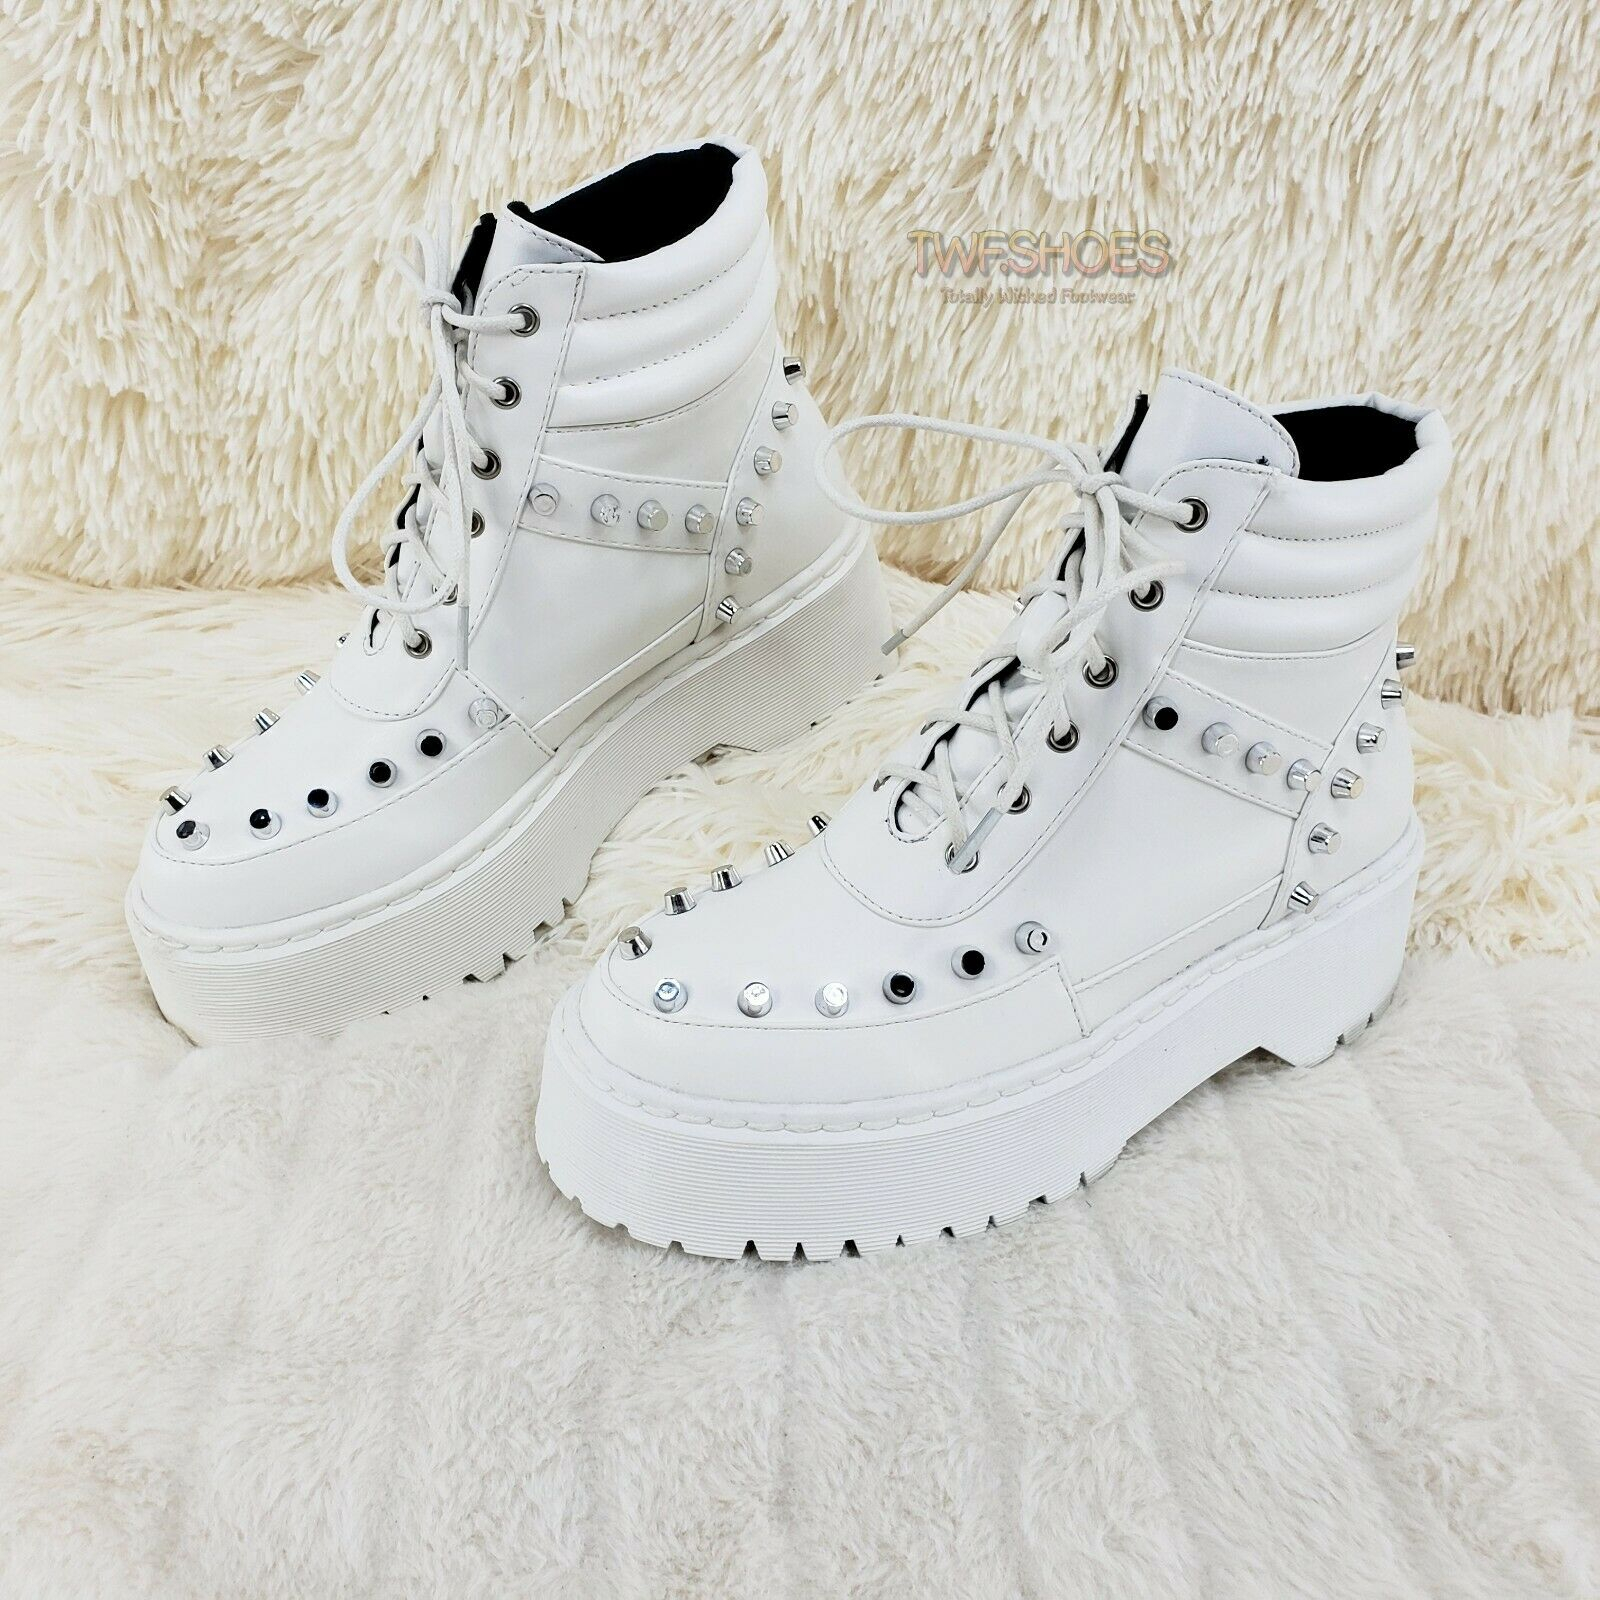 Image of Cyber Punk Silver Cap Stud Combat Sneaker Ankle Boots White 6-11